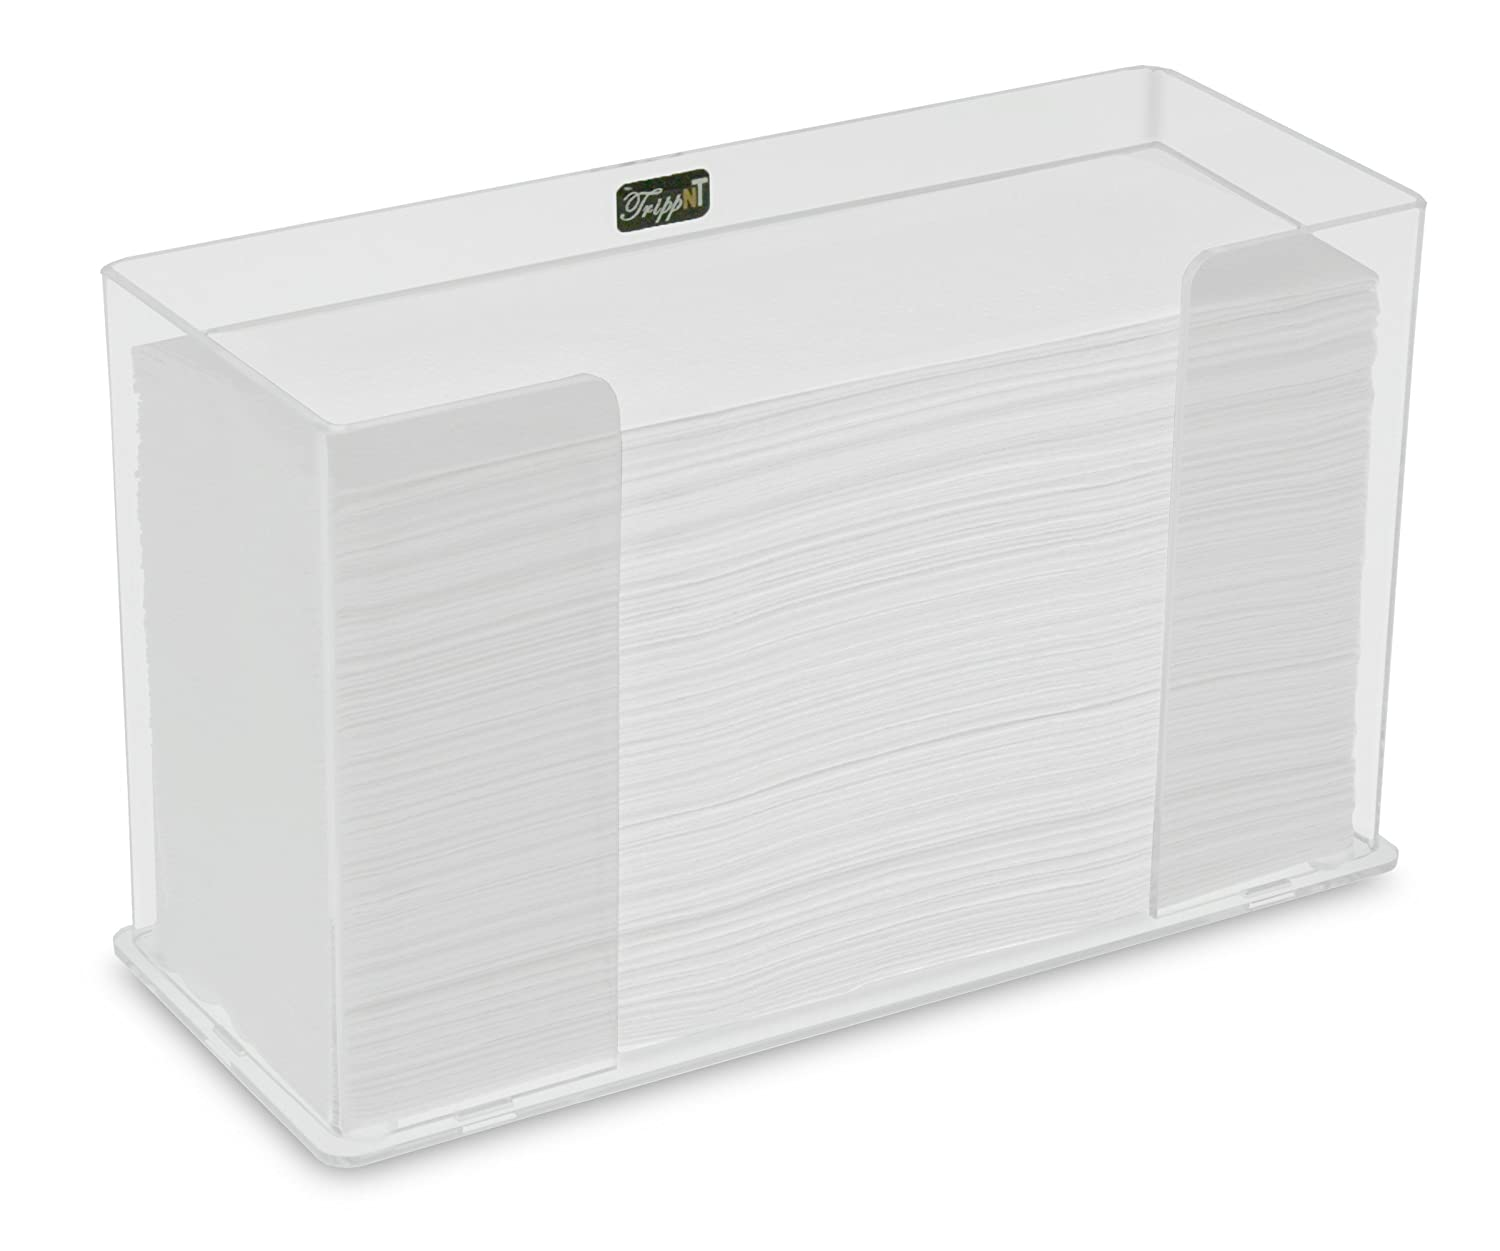 TrippNT 52916 Counter Top Clear Acrylic Fold/Multifold Paper Towel Dispenser, 11 1/4 x 6 5/8 x 4 5/8 inches WHD